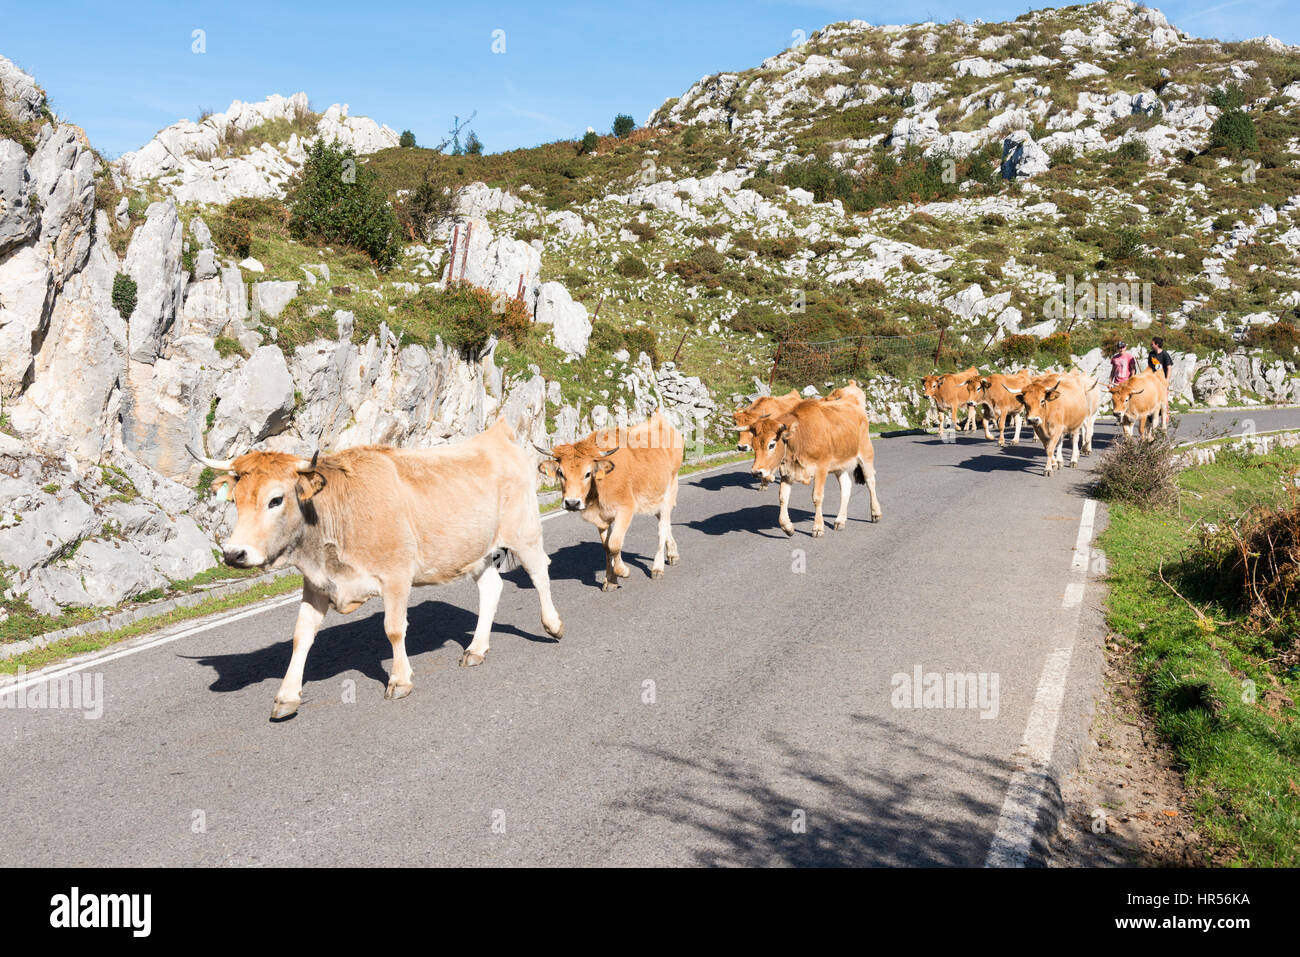 Cows being led down a road by shepherds in the Picos de Europa Asturias Spain - Stock Image